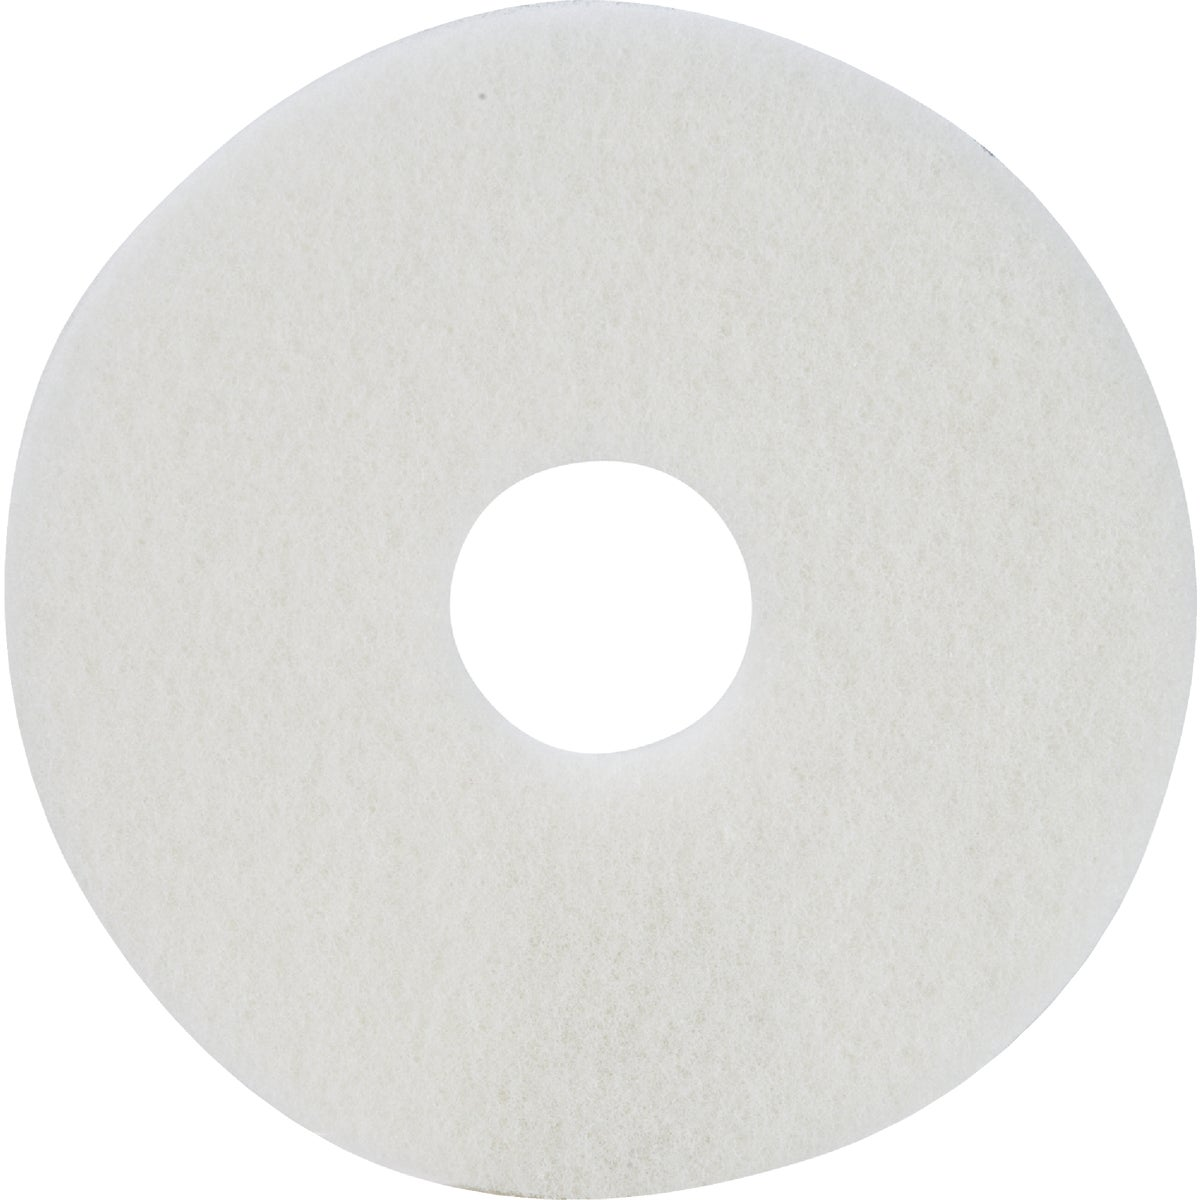 "13"" WHITE BUFFER PAD - TKL13W by Lundmark Wax Co"